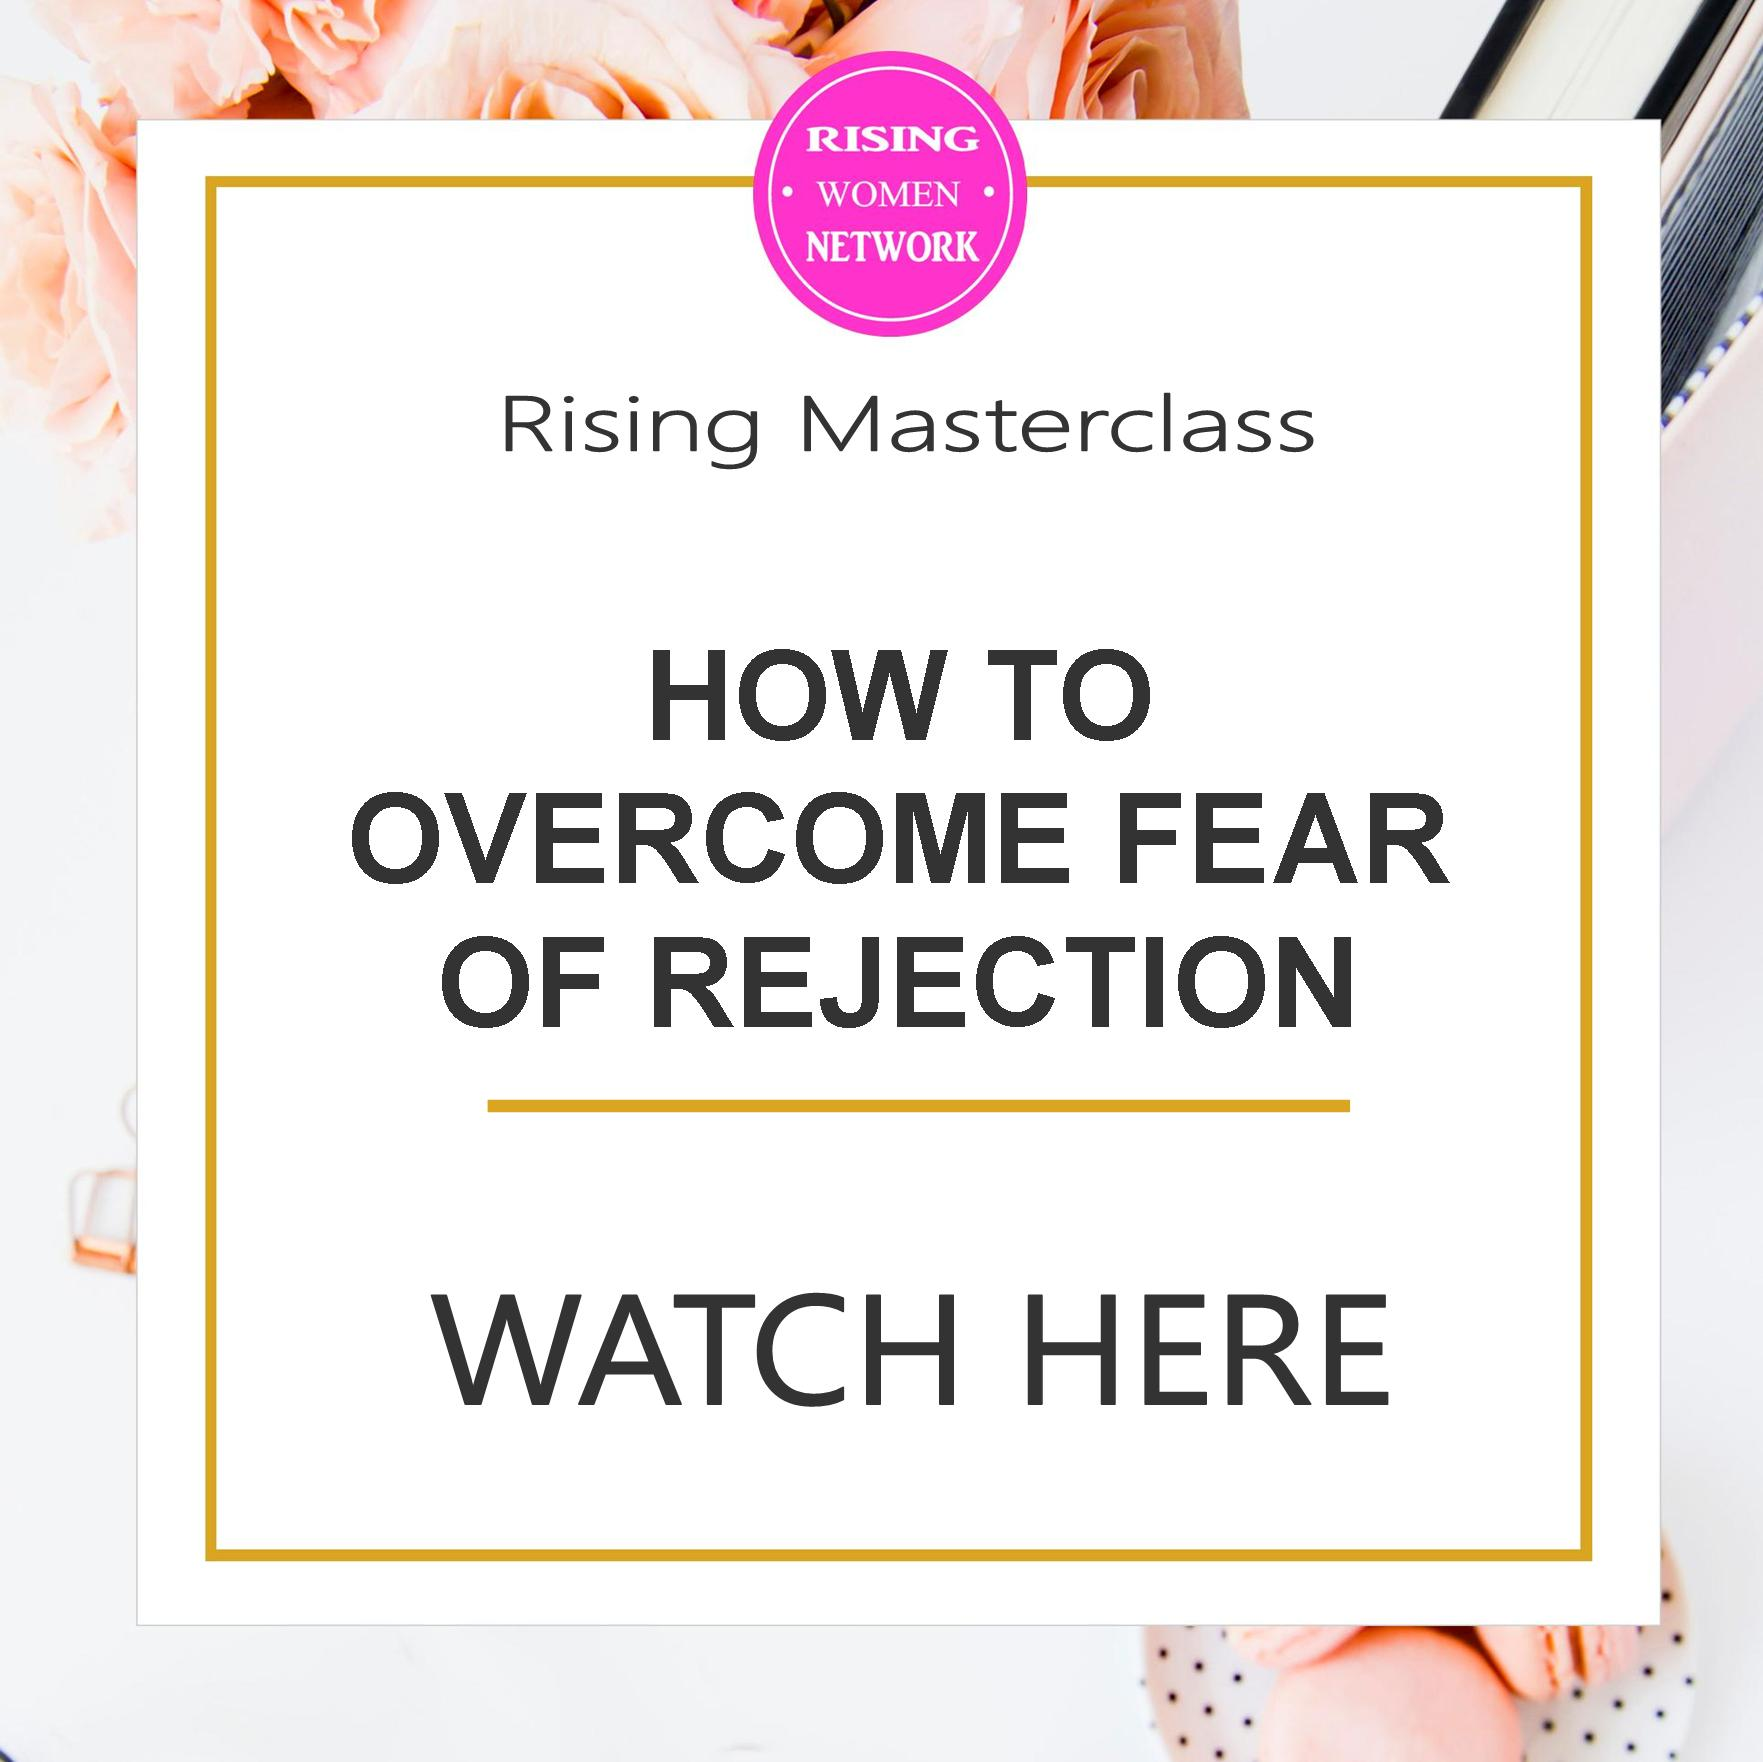 Fear of rejection holds you back in many areas of your life. Here are some techniques to become more confident and accept rejection if it does happen.